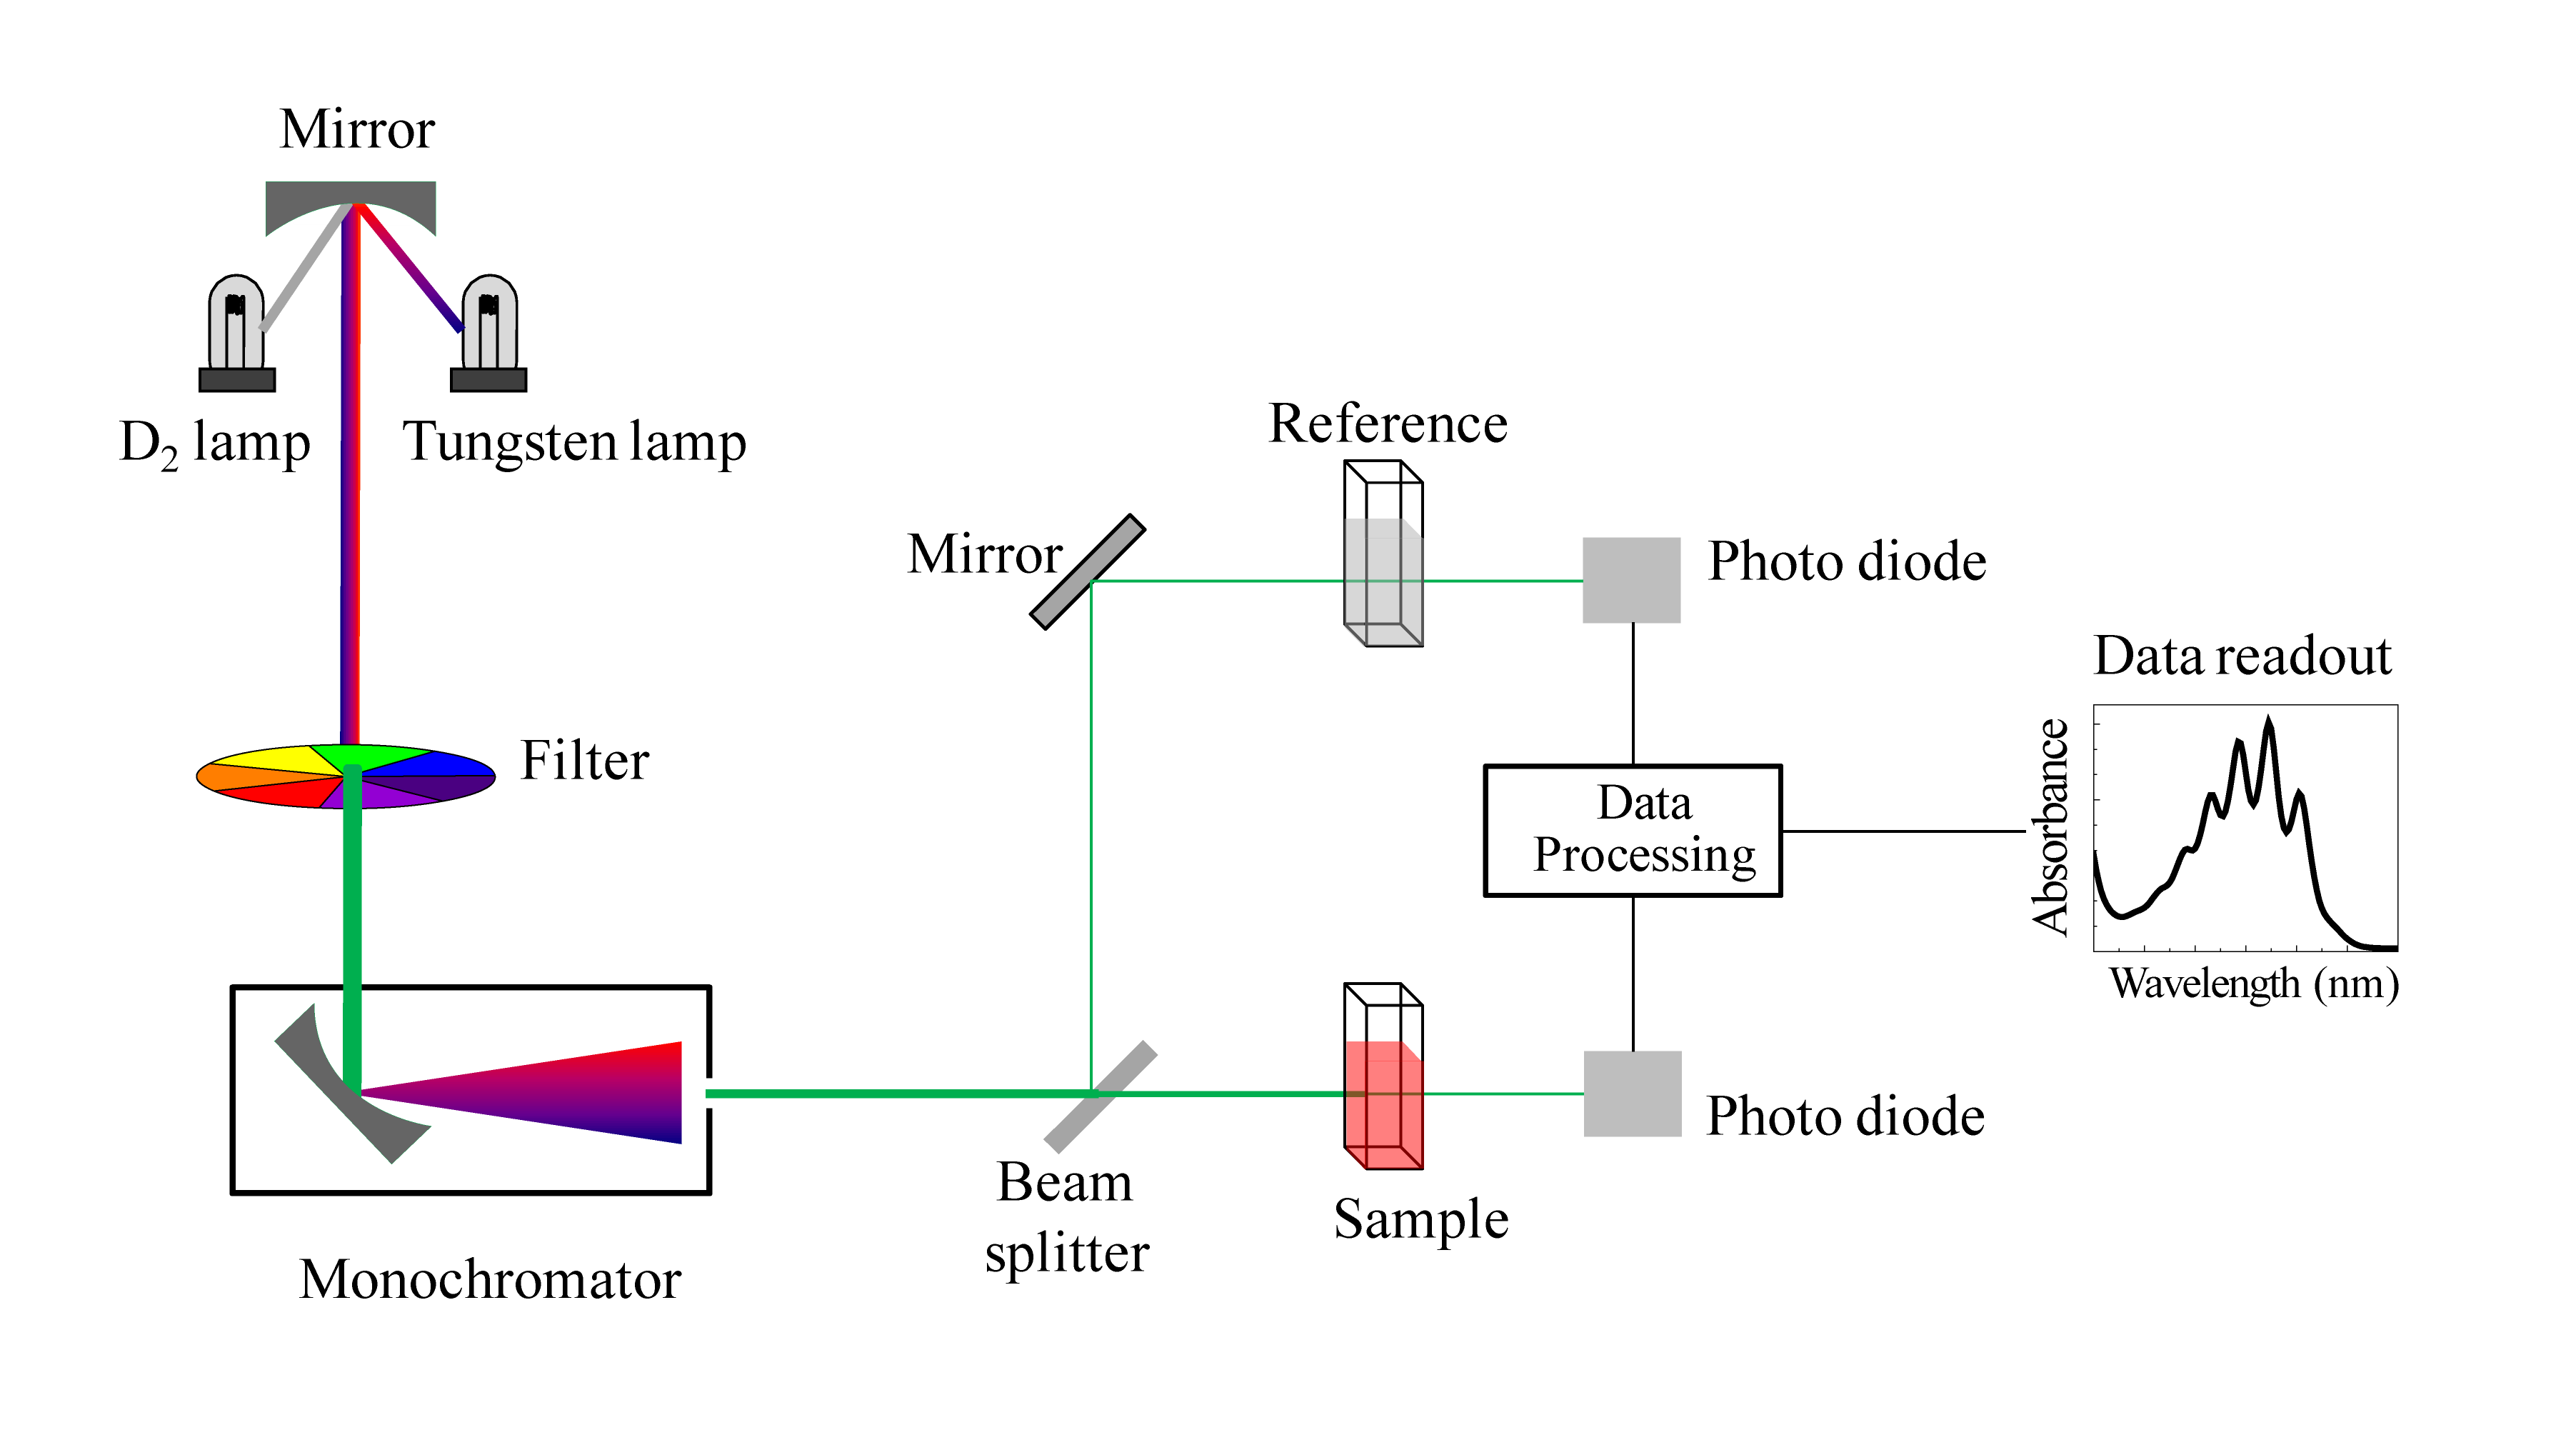 file schematic of uv visible spectrophotometer png wikimedia commons rh commons wikimedia org block diagram of uv-vis spectrometer block diagram of double beam uv visible spectrophotometer